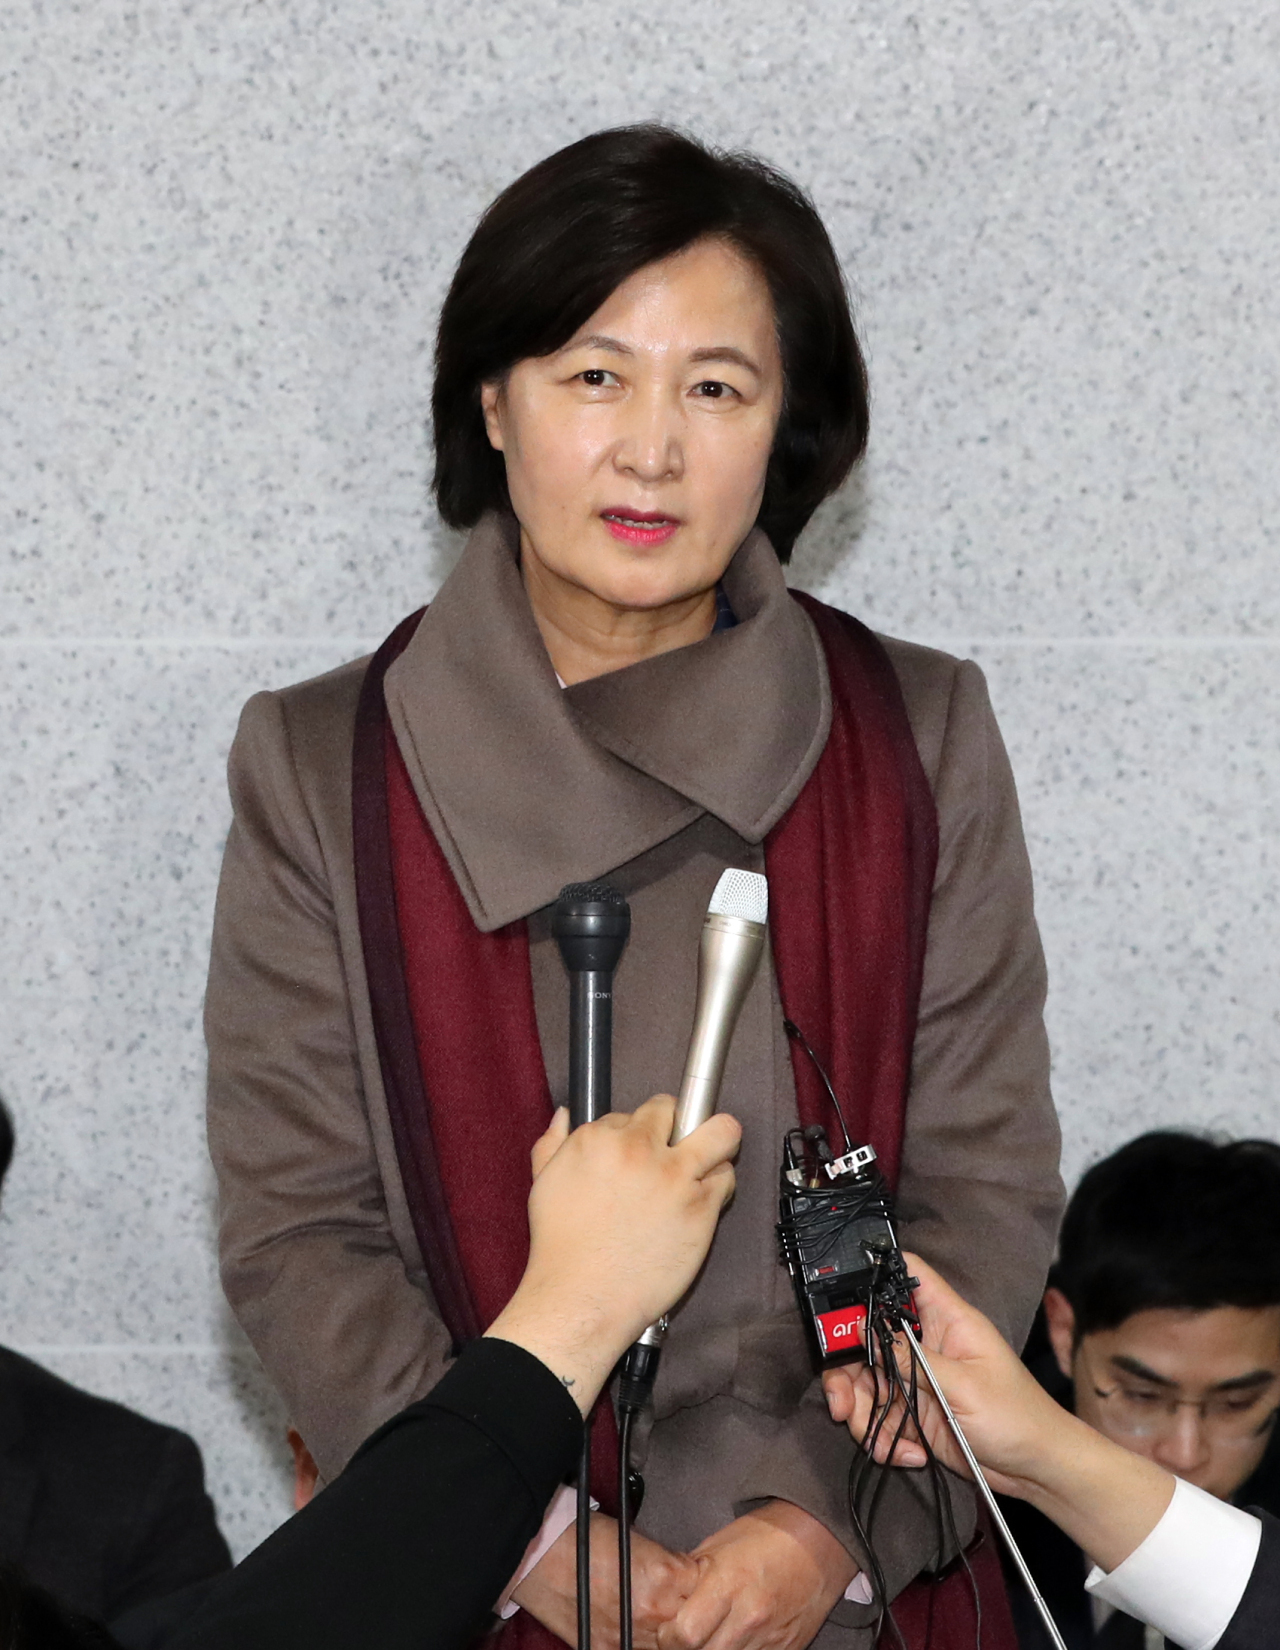 Choo Mi-ae, nominee for South Korea's justice minister, addresses reporters. (Yonhap)